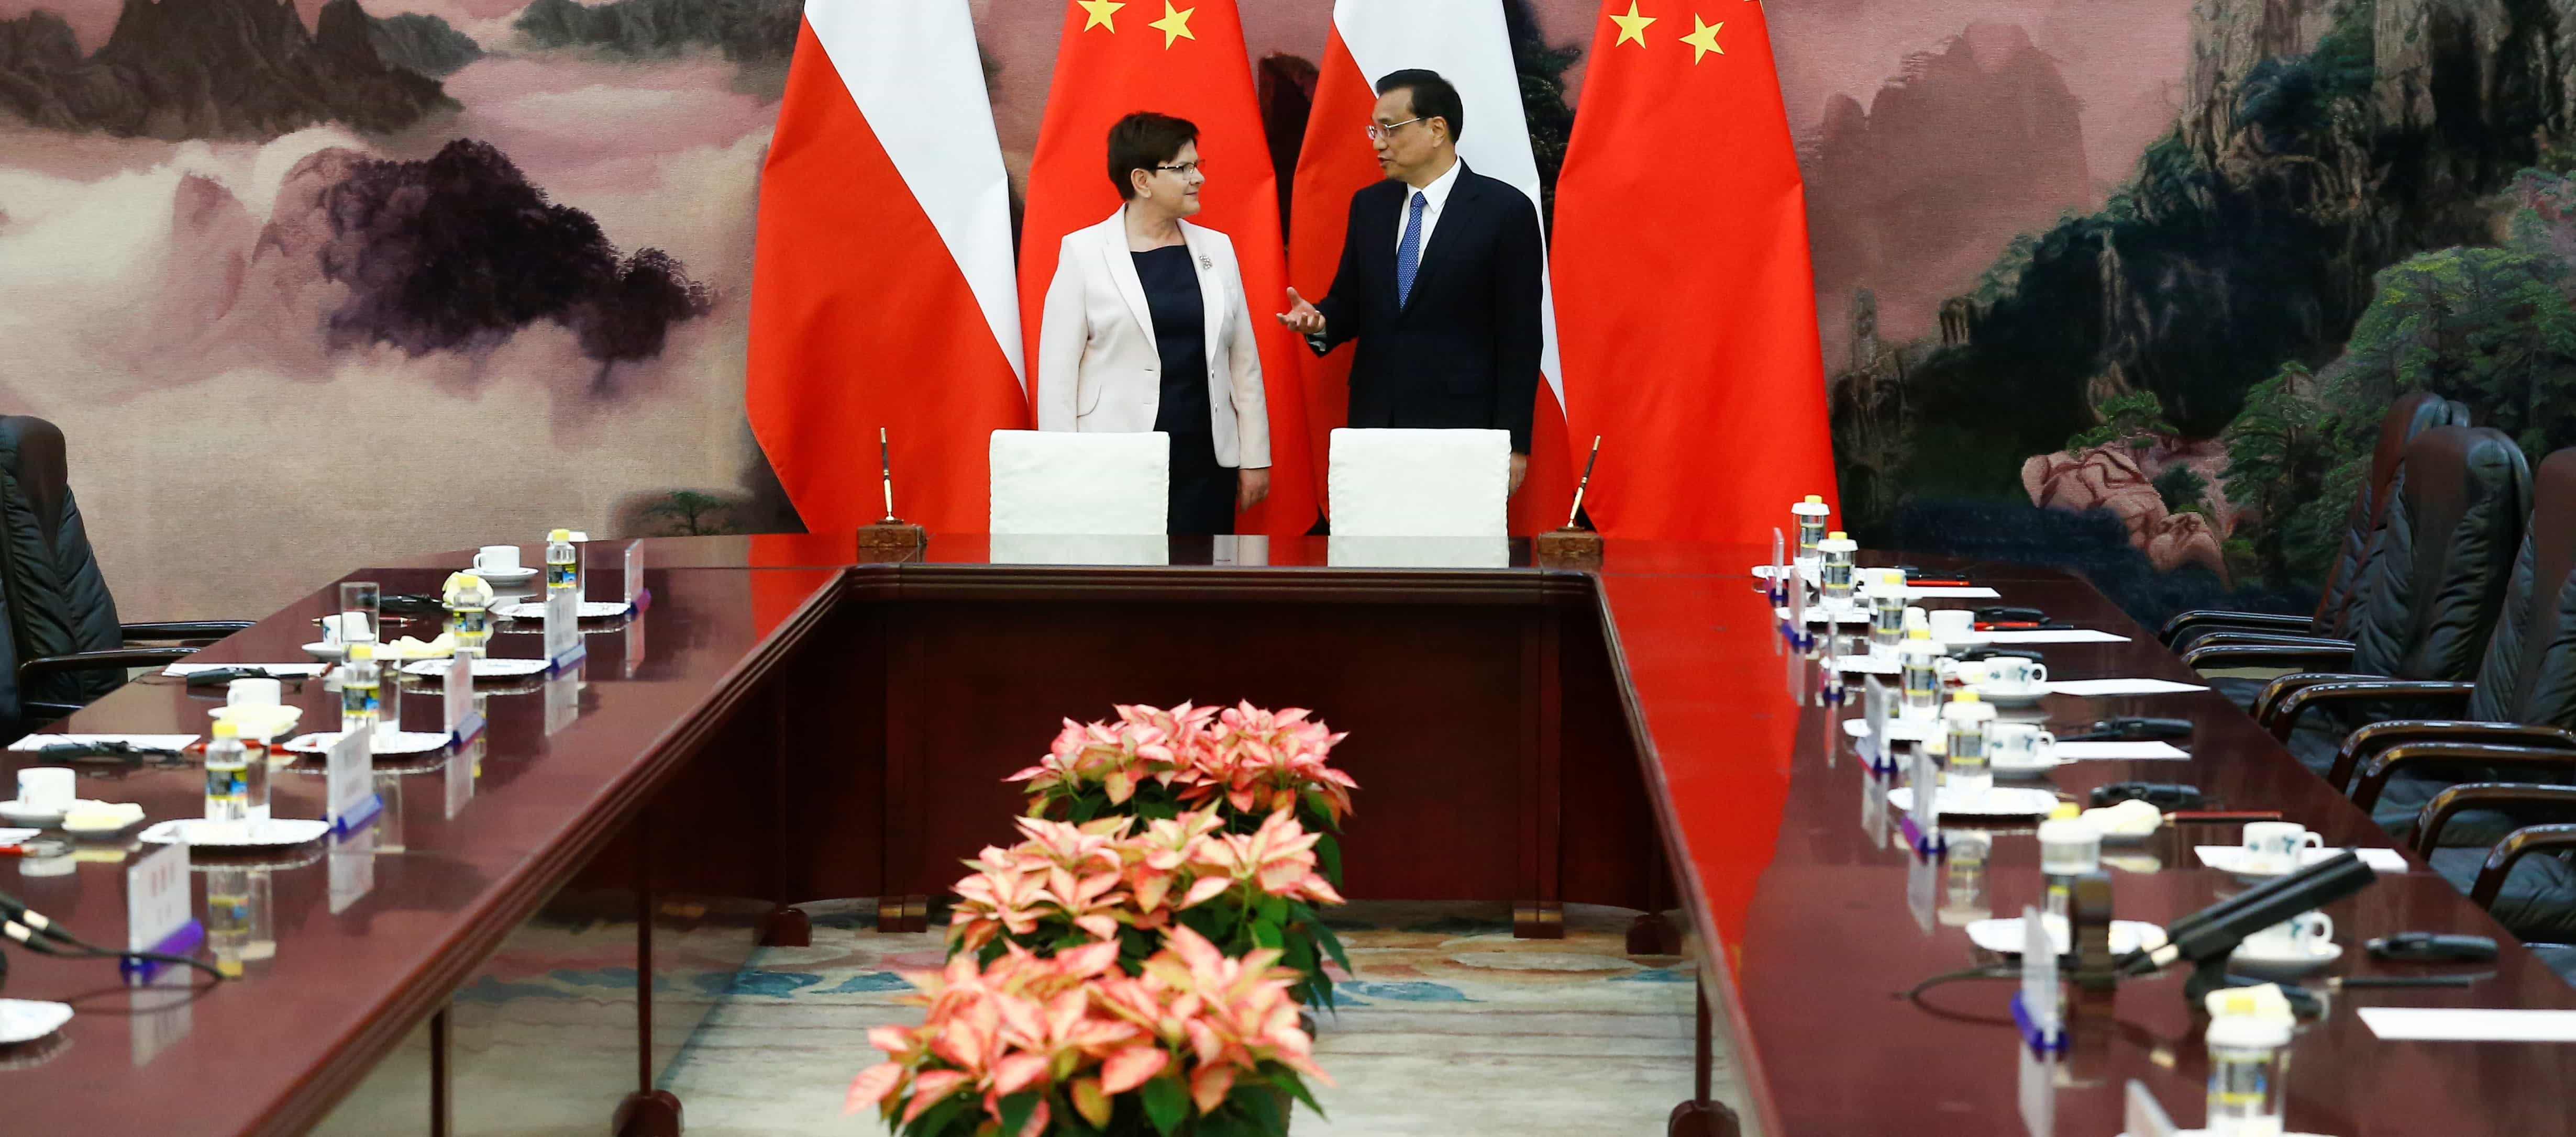 Chinese Premier Li Keqiang and Poland's Prime Minister Beata Szydlo, May 2017 (Photo: Thomas Peter/Getty Images)